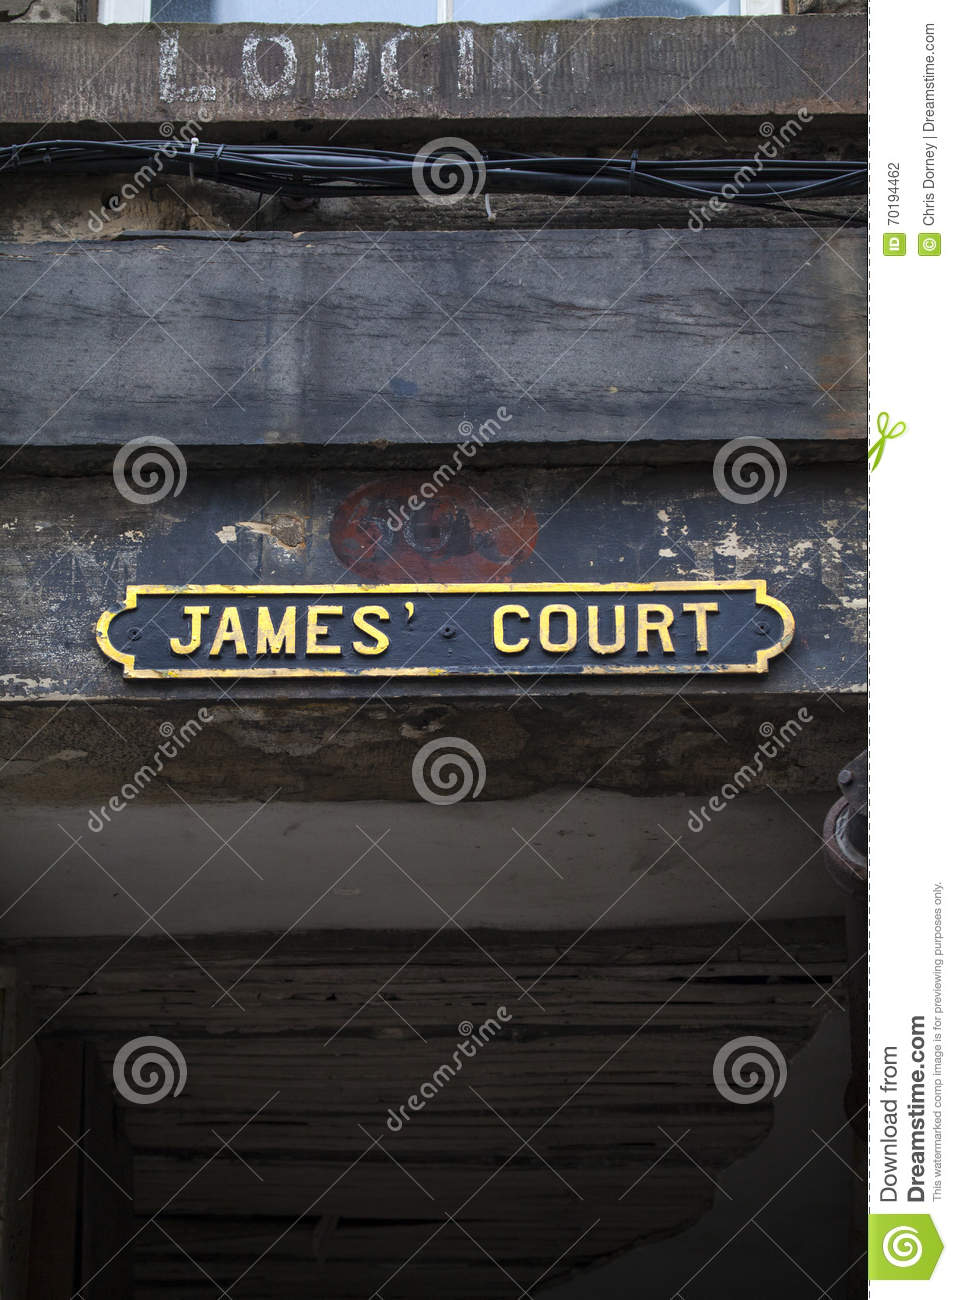 James Court en Edimburgo